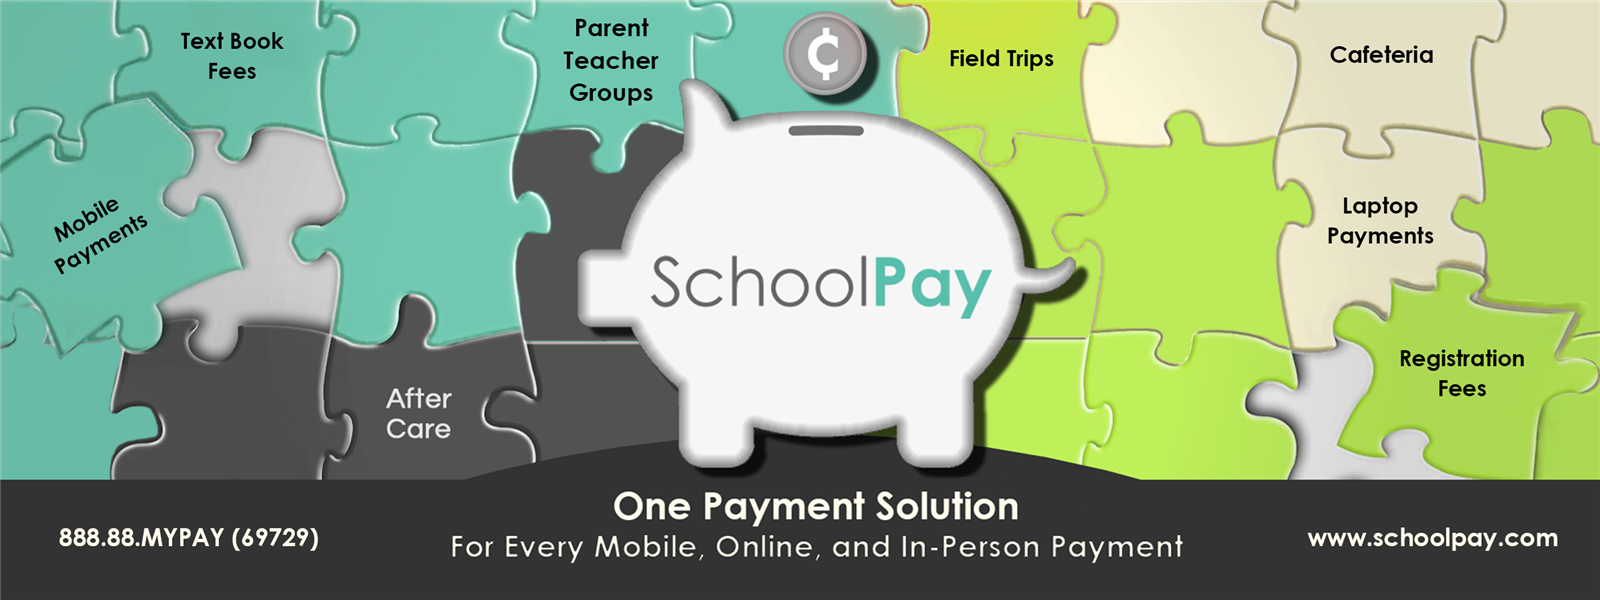 SchoolPay / How to Use SchoolPay